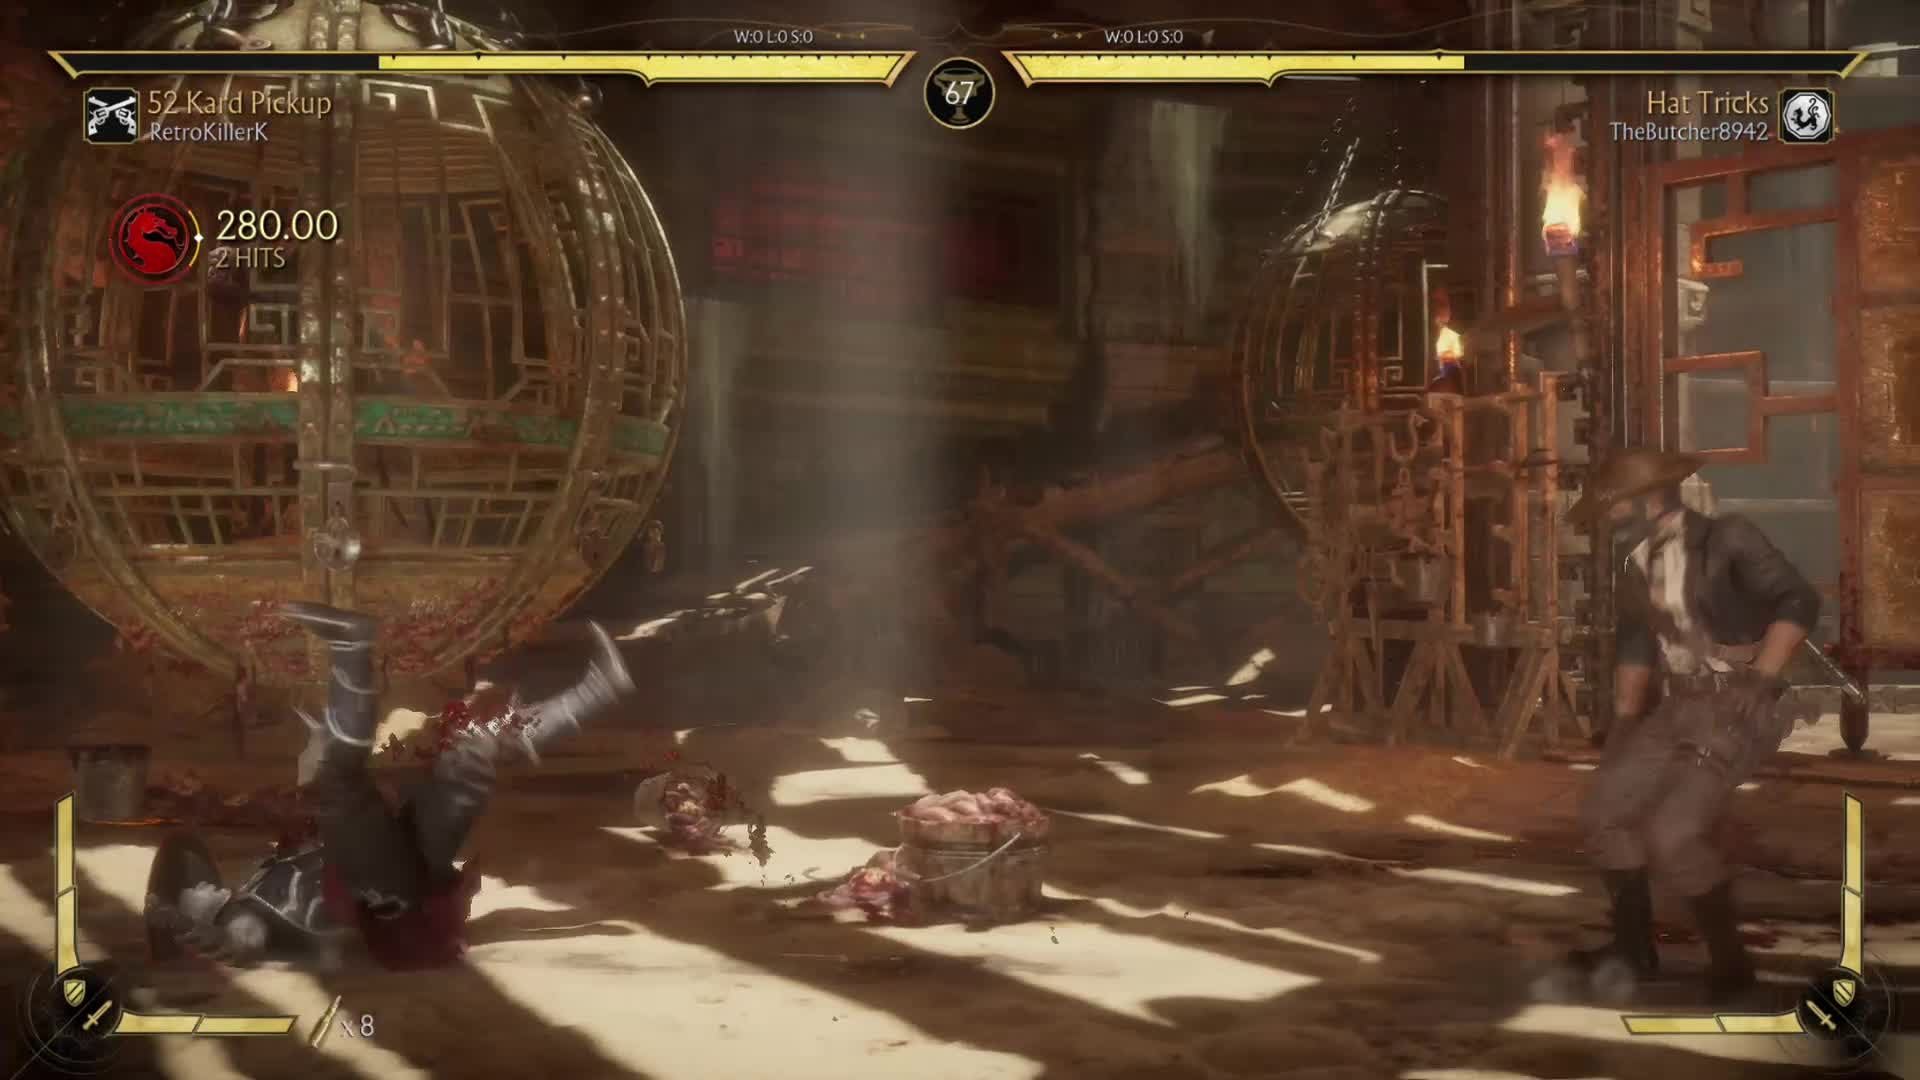 Mortal Kombat: General - Rage quit on ranked video cover image 1